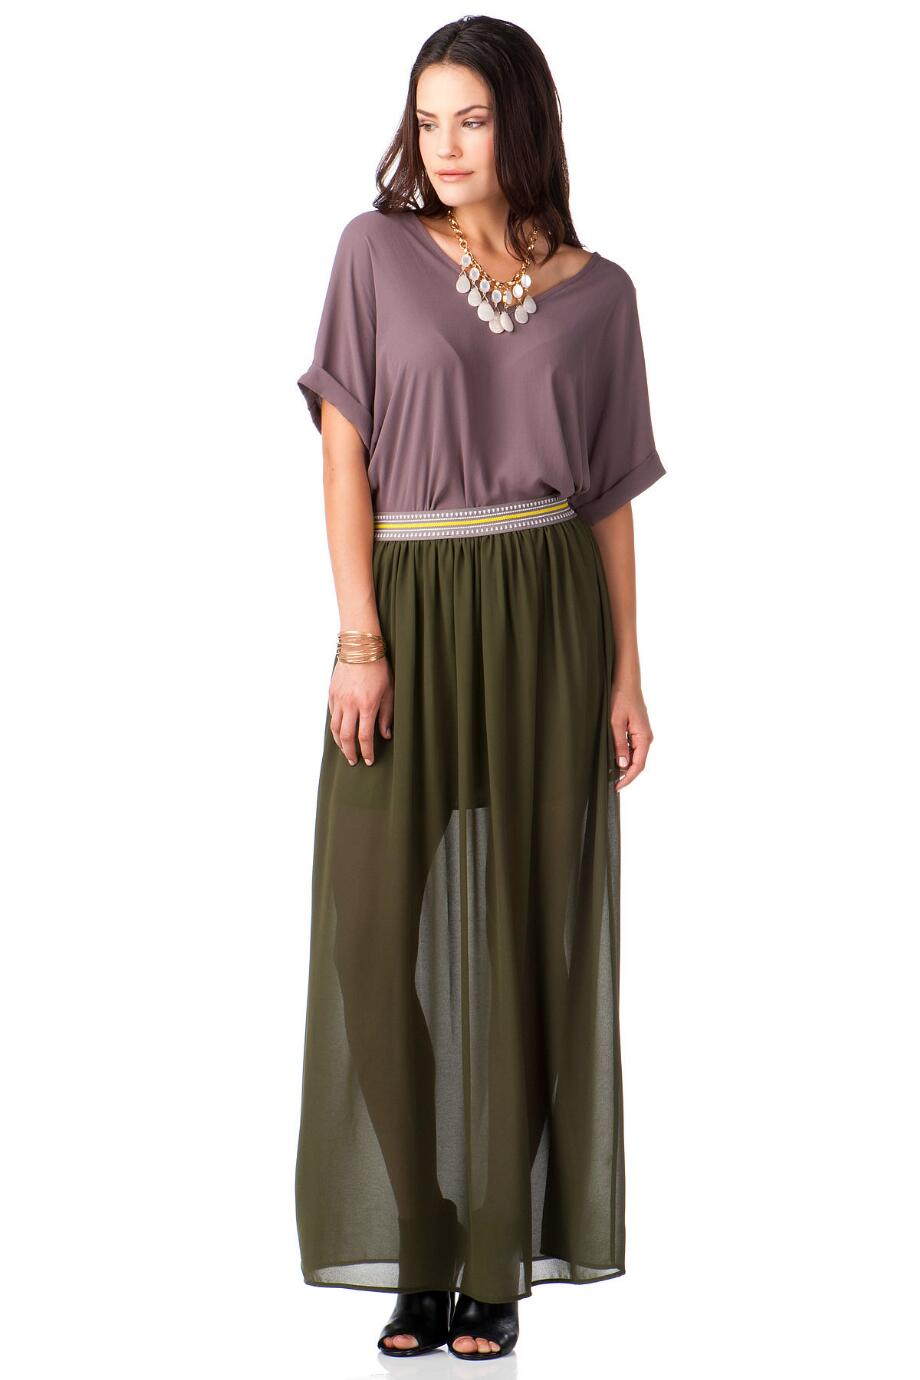 Sun City Chiffon Maxi Skirt